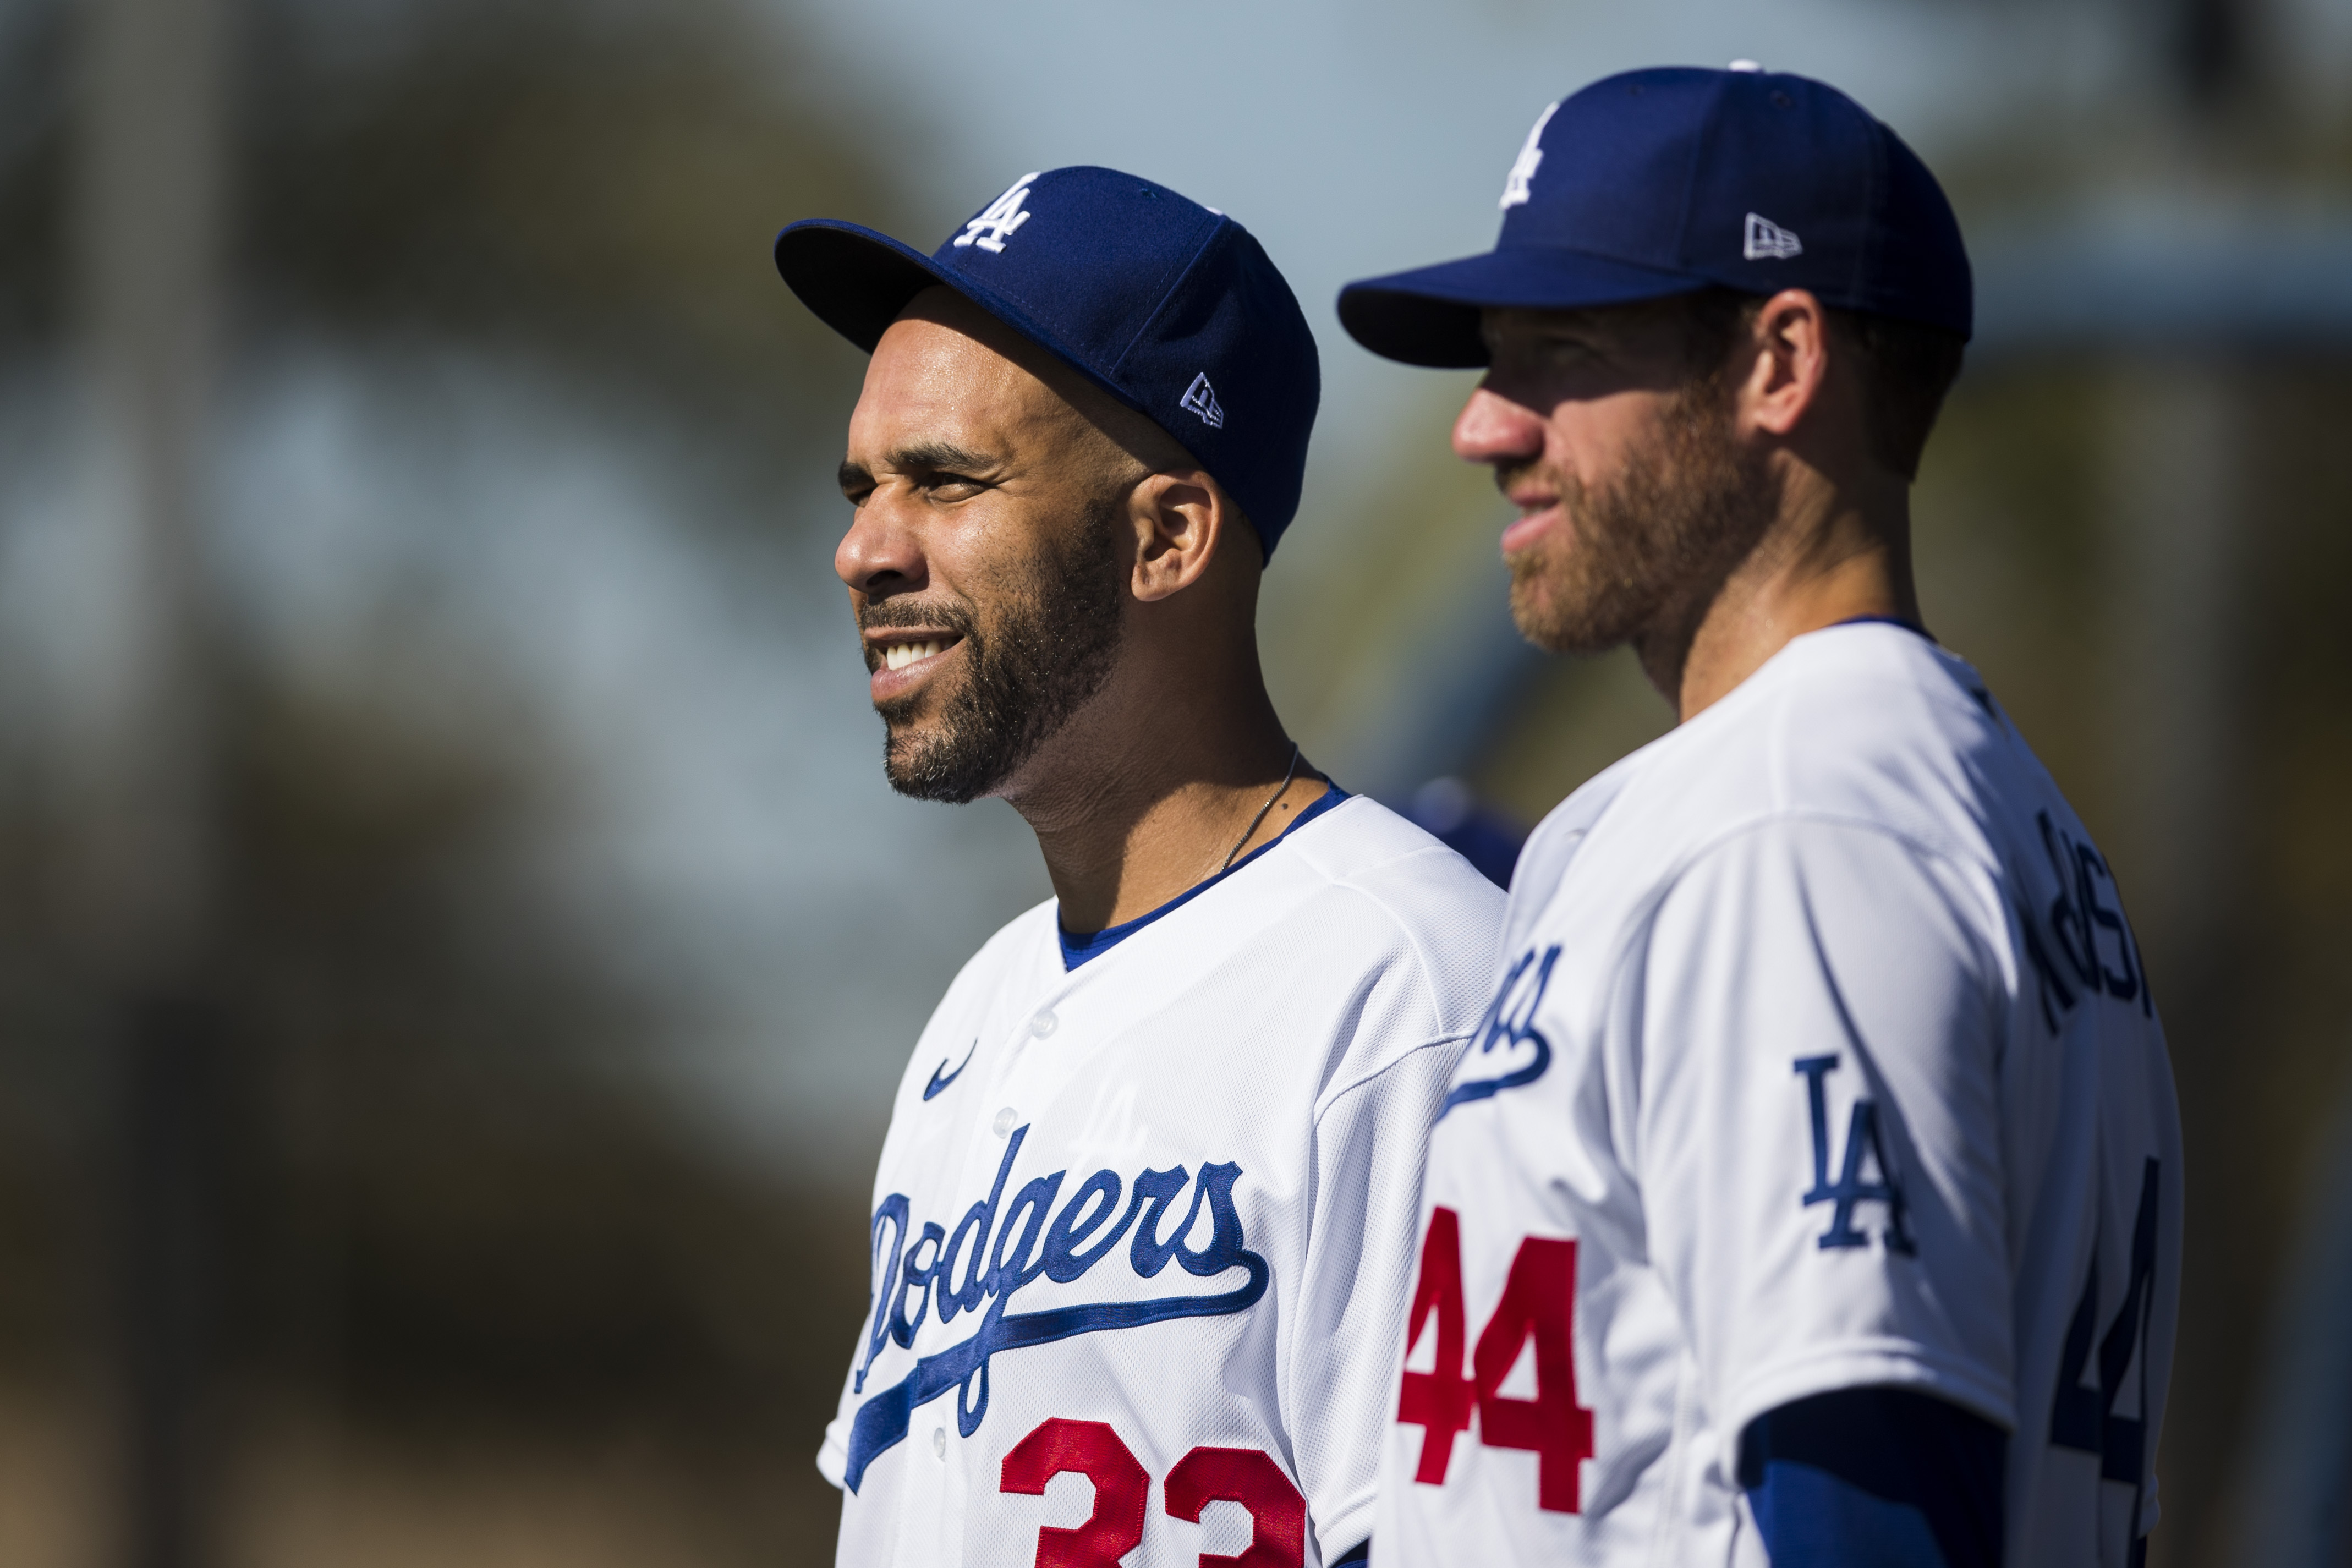 David Price Gives $1000 to Every Dodgers Minor Leaguer in Organization